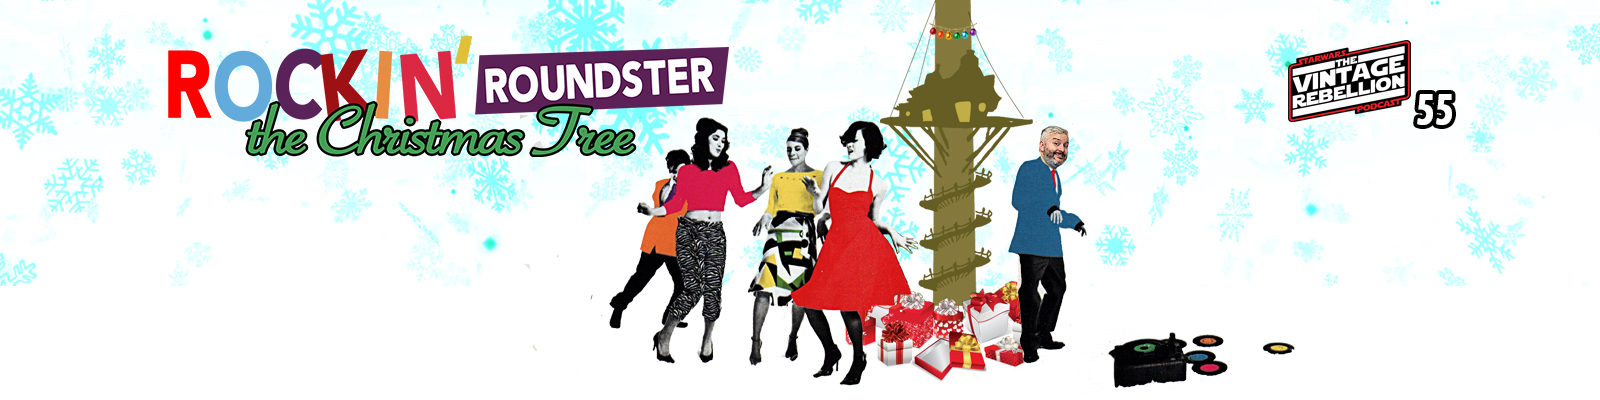 Episode 55 : Rockin' Roundster The Christmas Tree